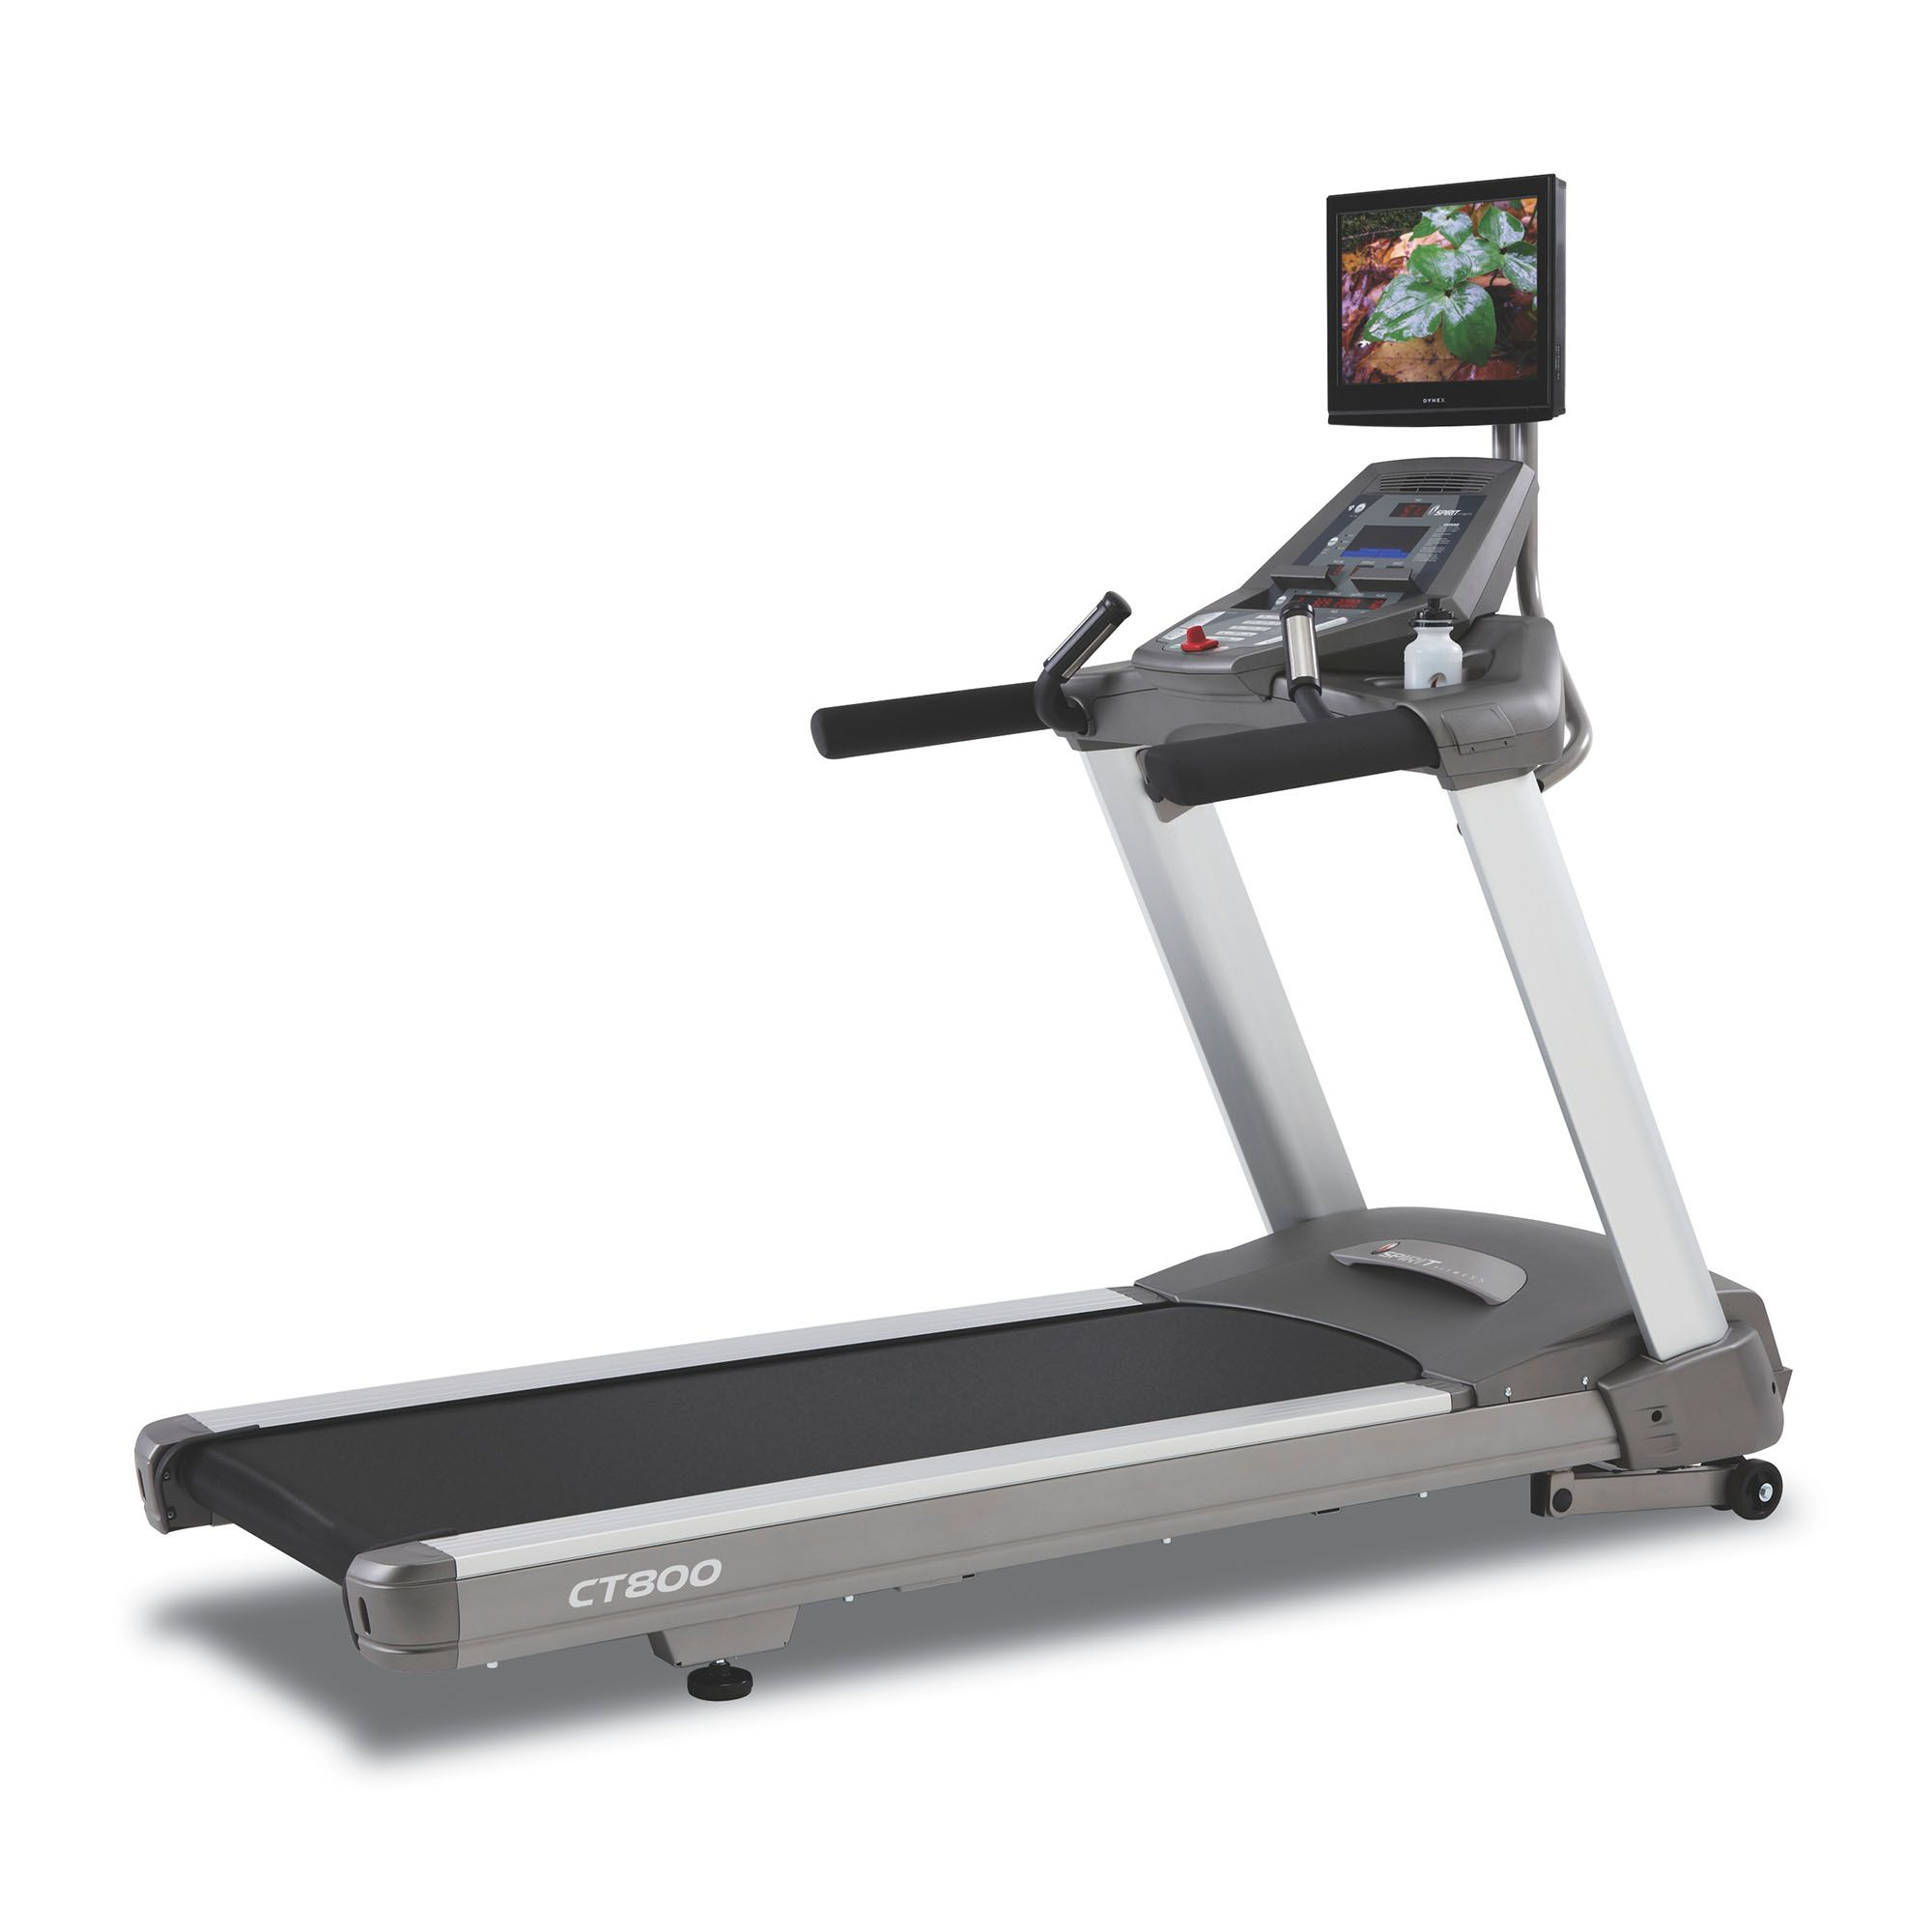 Spirit Ct800 Treadmill With Medical Handrails